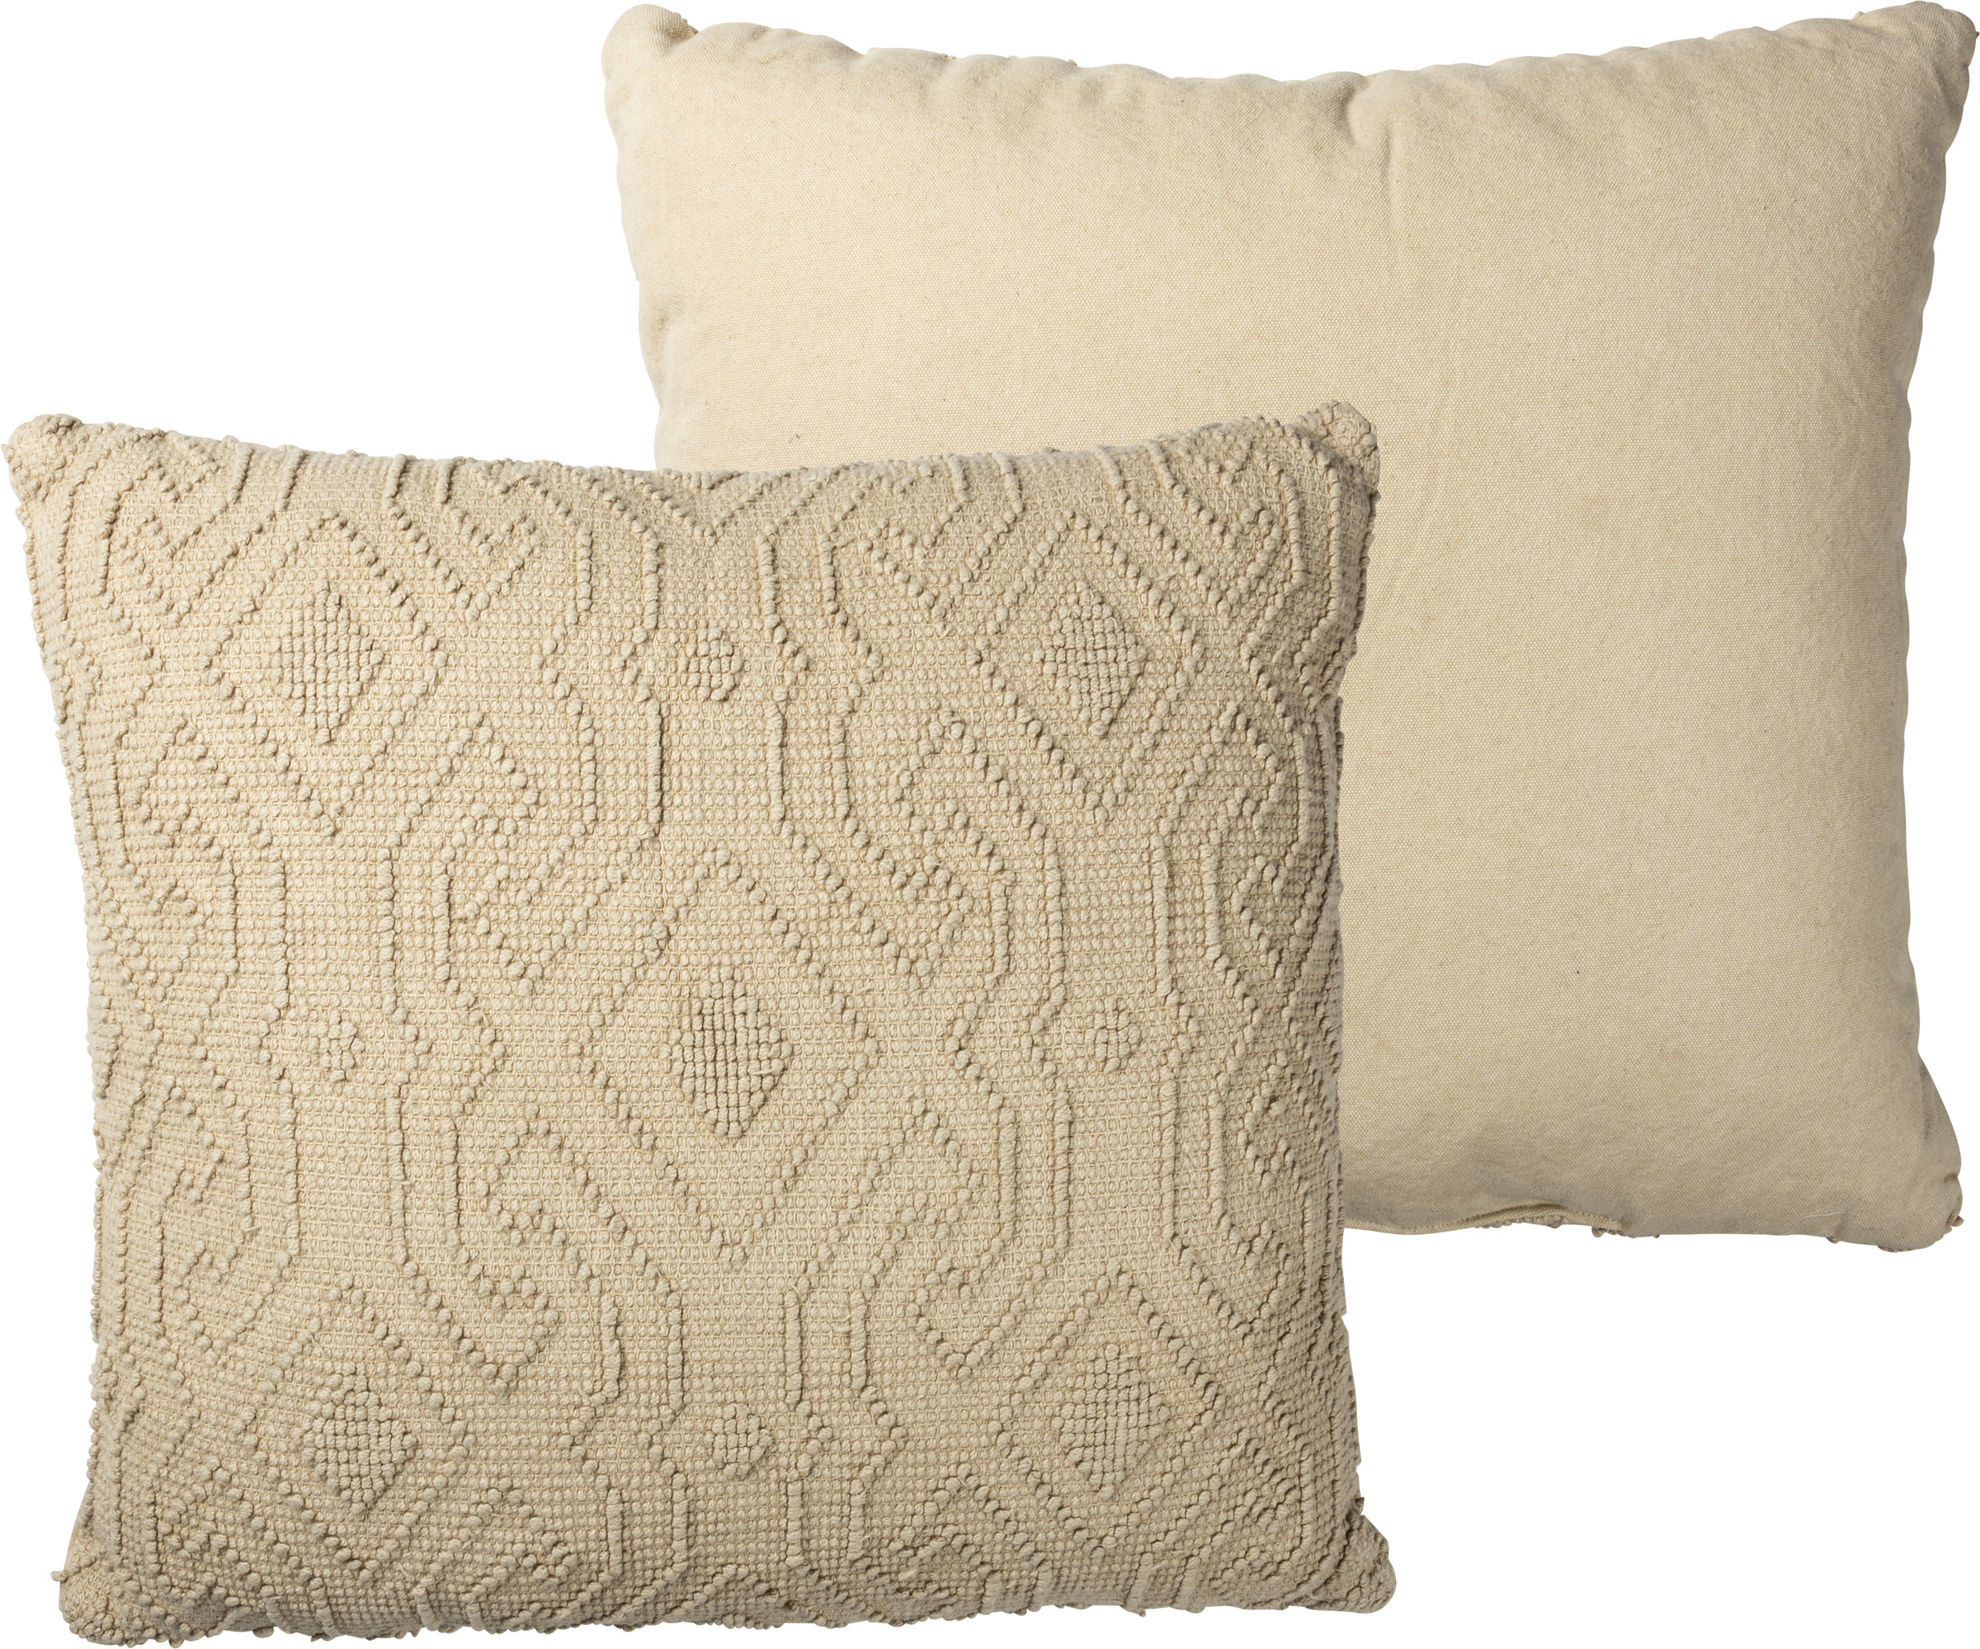 Geometric Pillow by Primitives by Kathy